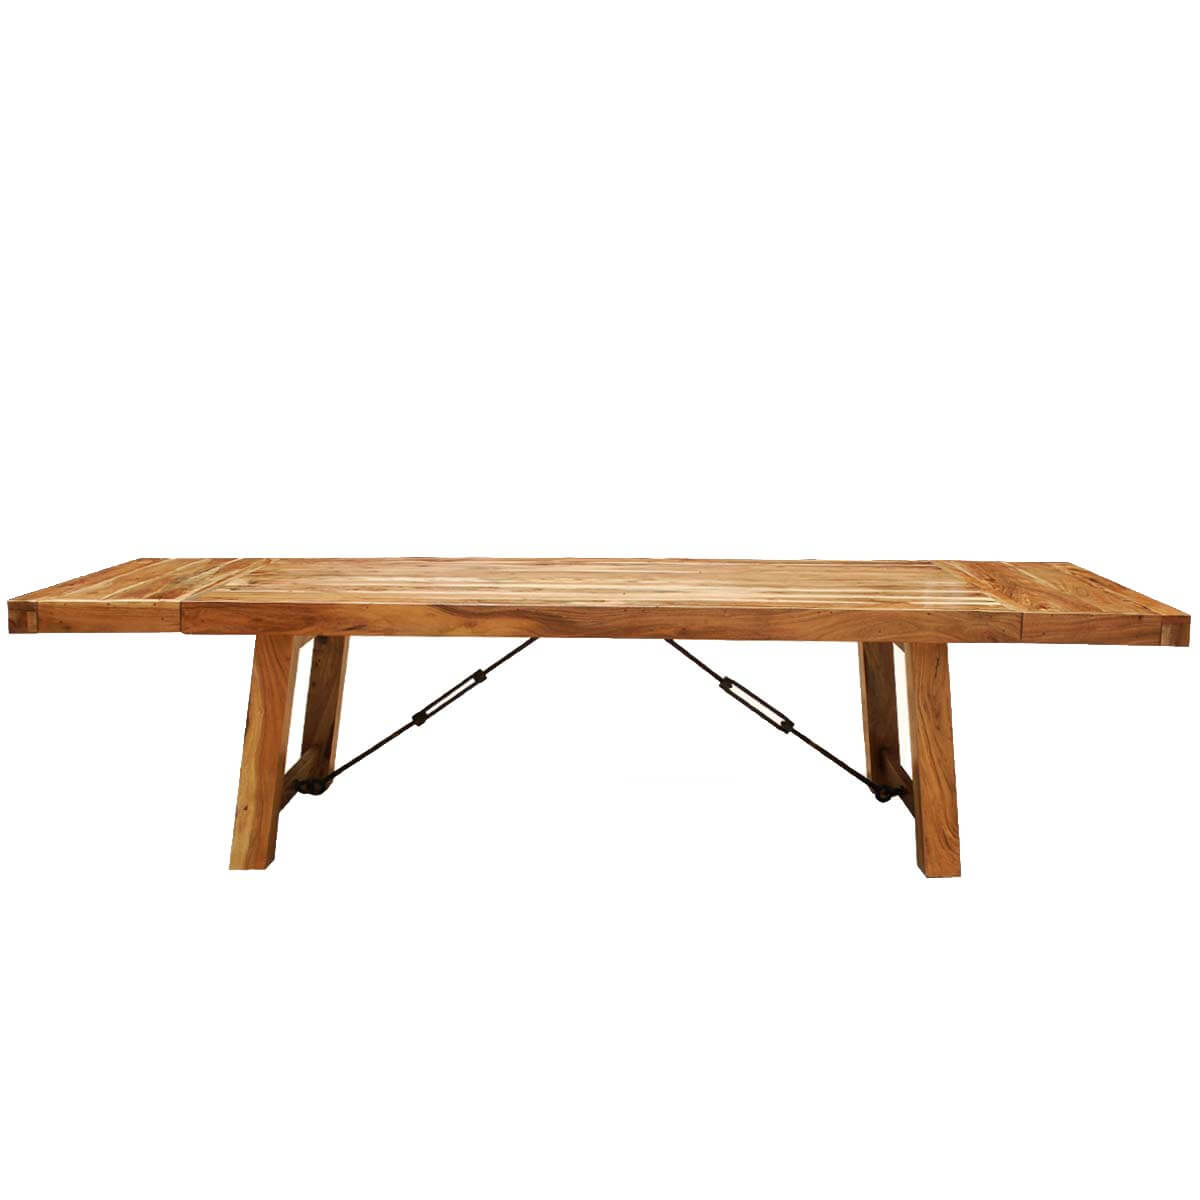 Rustic Wooden Dining Tables ~ Santa fe rustic wood large extendable dining room table